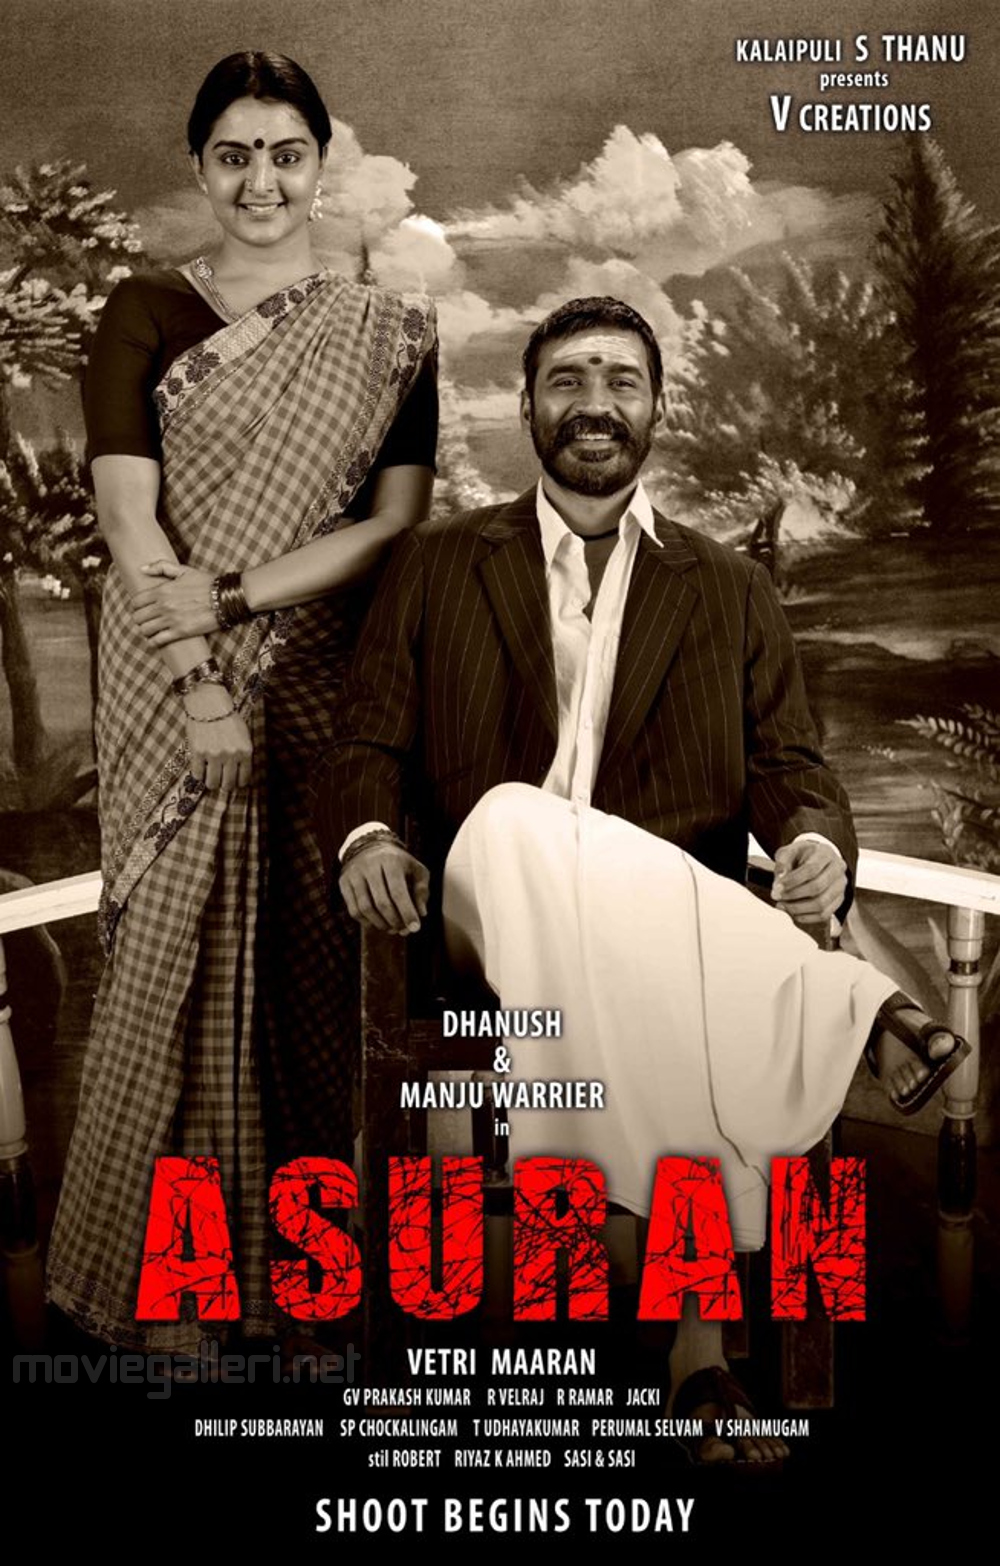 Manju Warrier Dhanush Asuran Movie Shooting Begins Today Poster HD